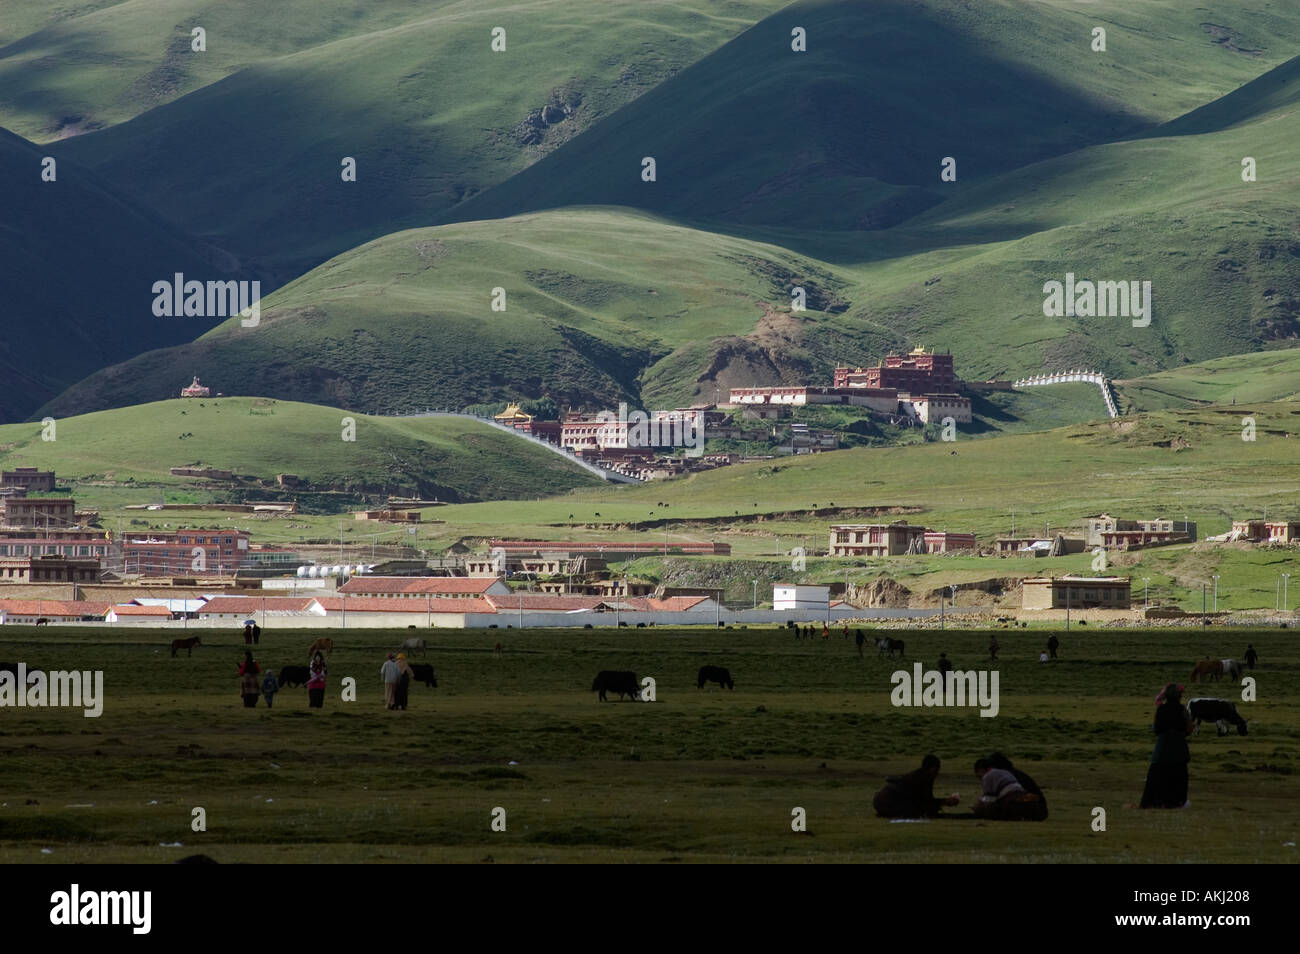 The town of Litang as seen from the Litang Horse Festival grounds in Kham Sichuan Province China Tibet  - Stock Image